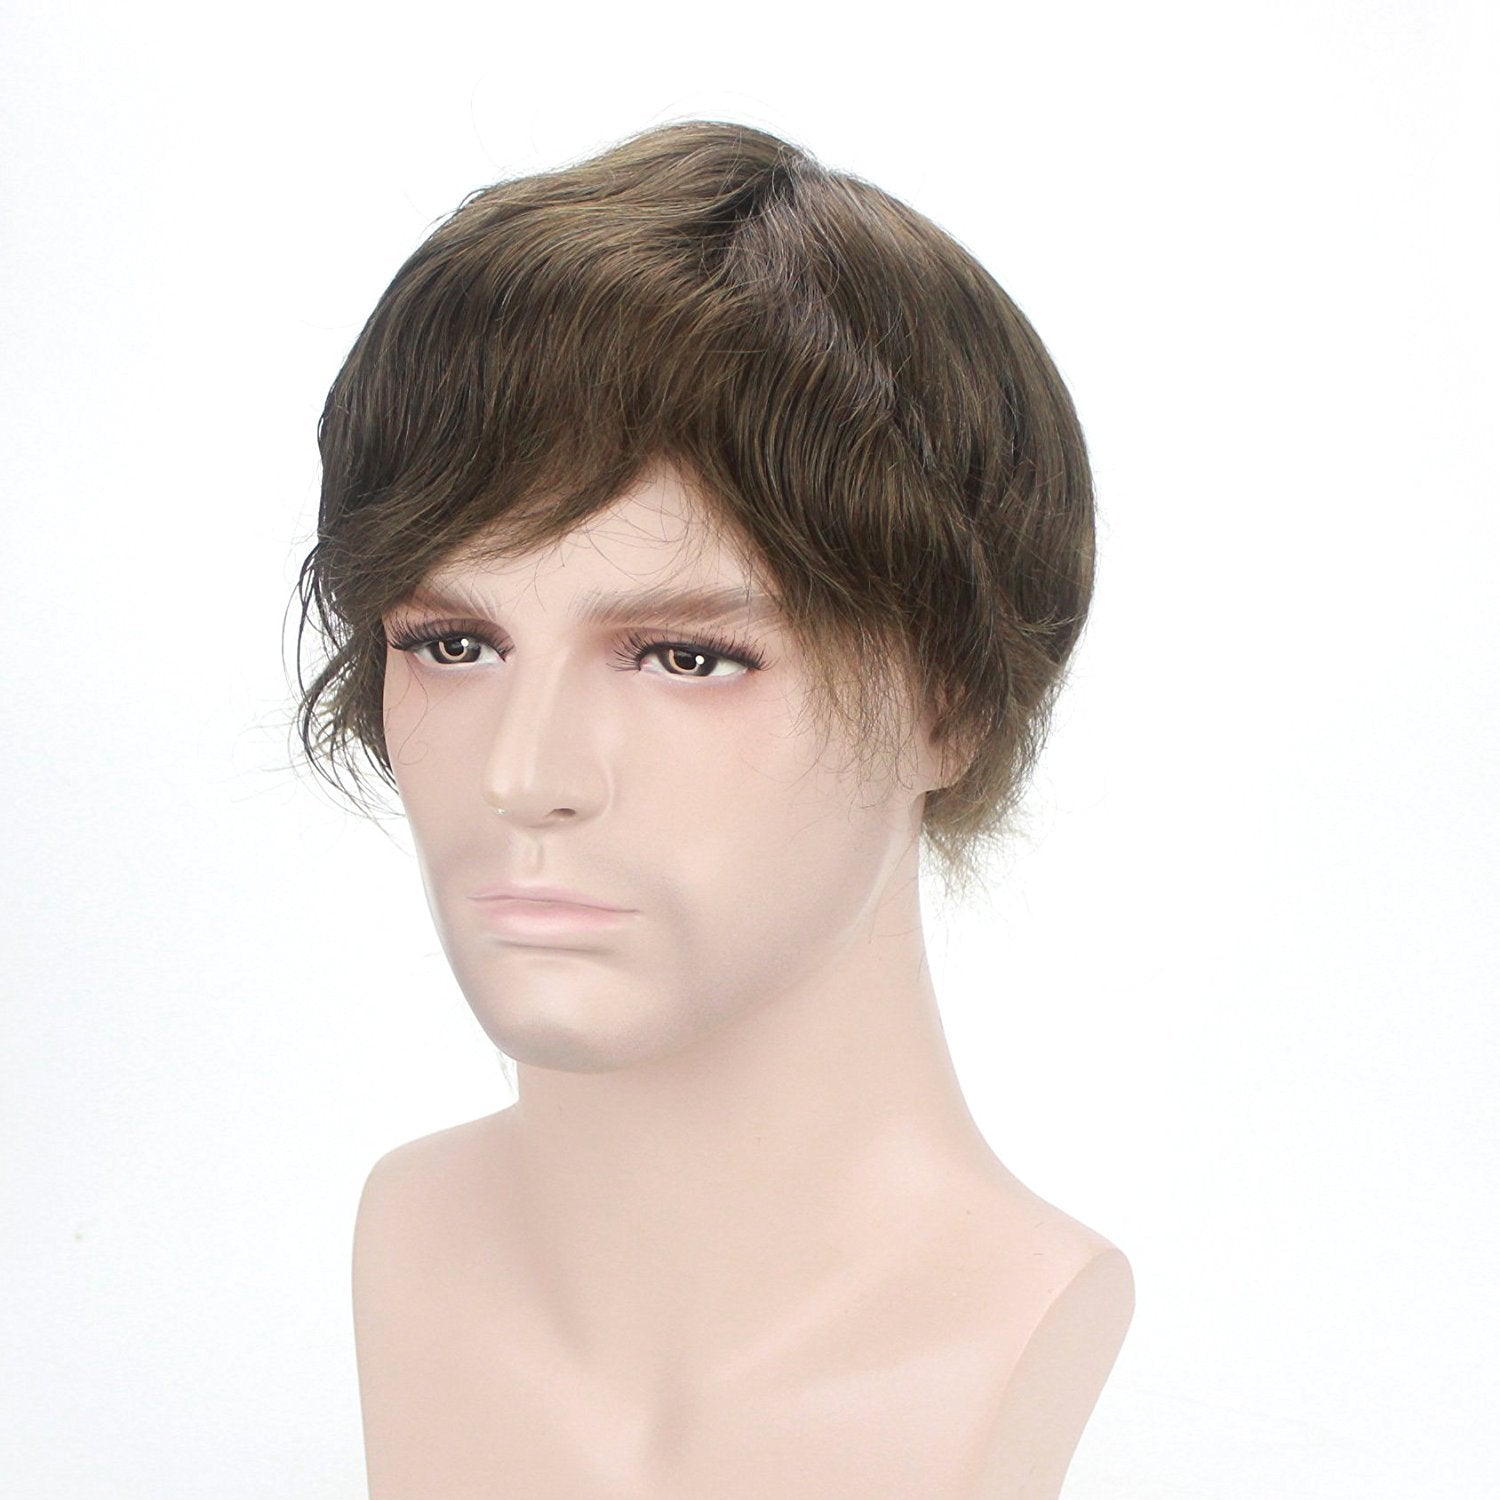 male-toupee-medium-brown-remy-hair